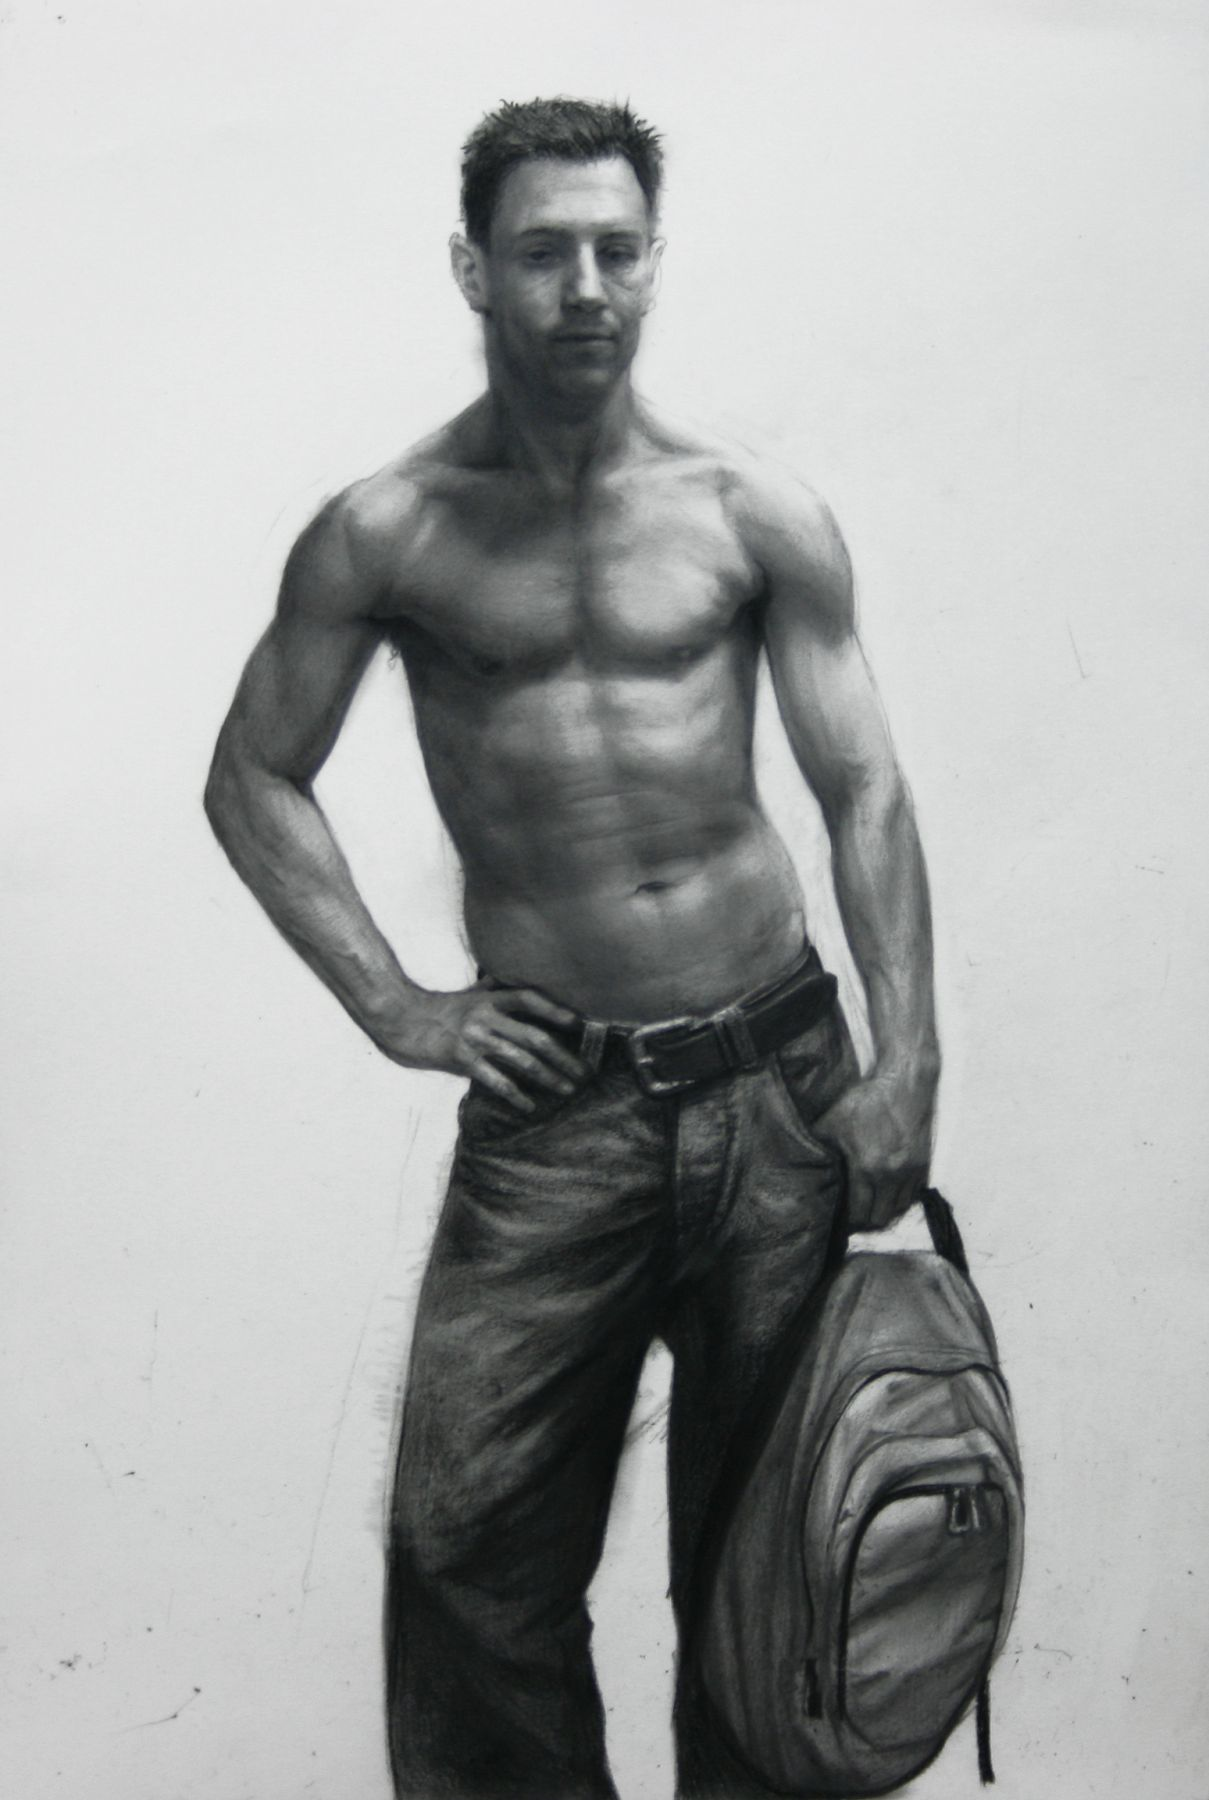 Steven Assael, Michael Holding a Backpack (SOLD), 2008, crayon and graphite on paper, 15 x 10 1/4 inches